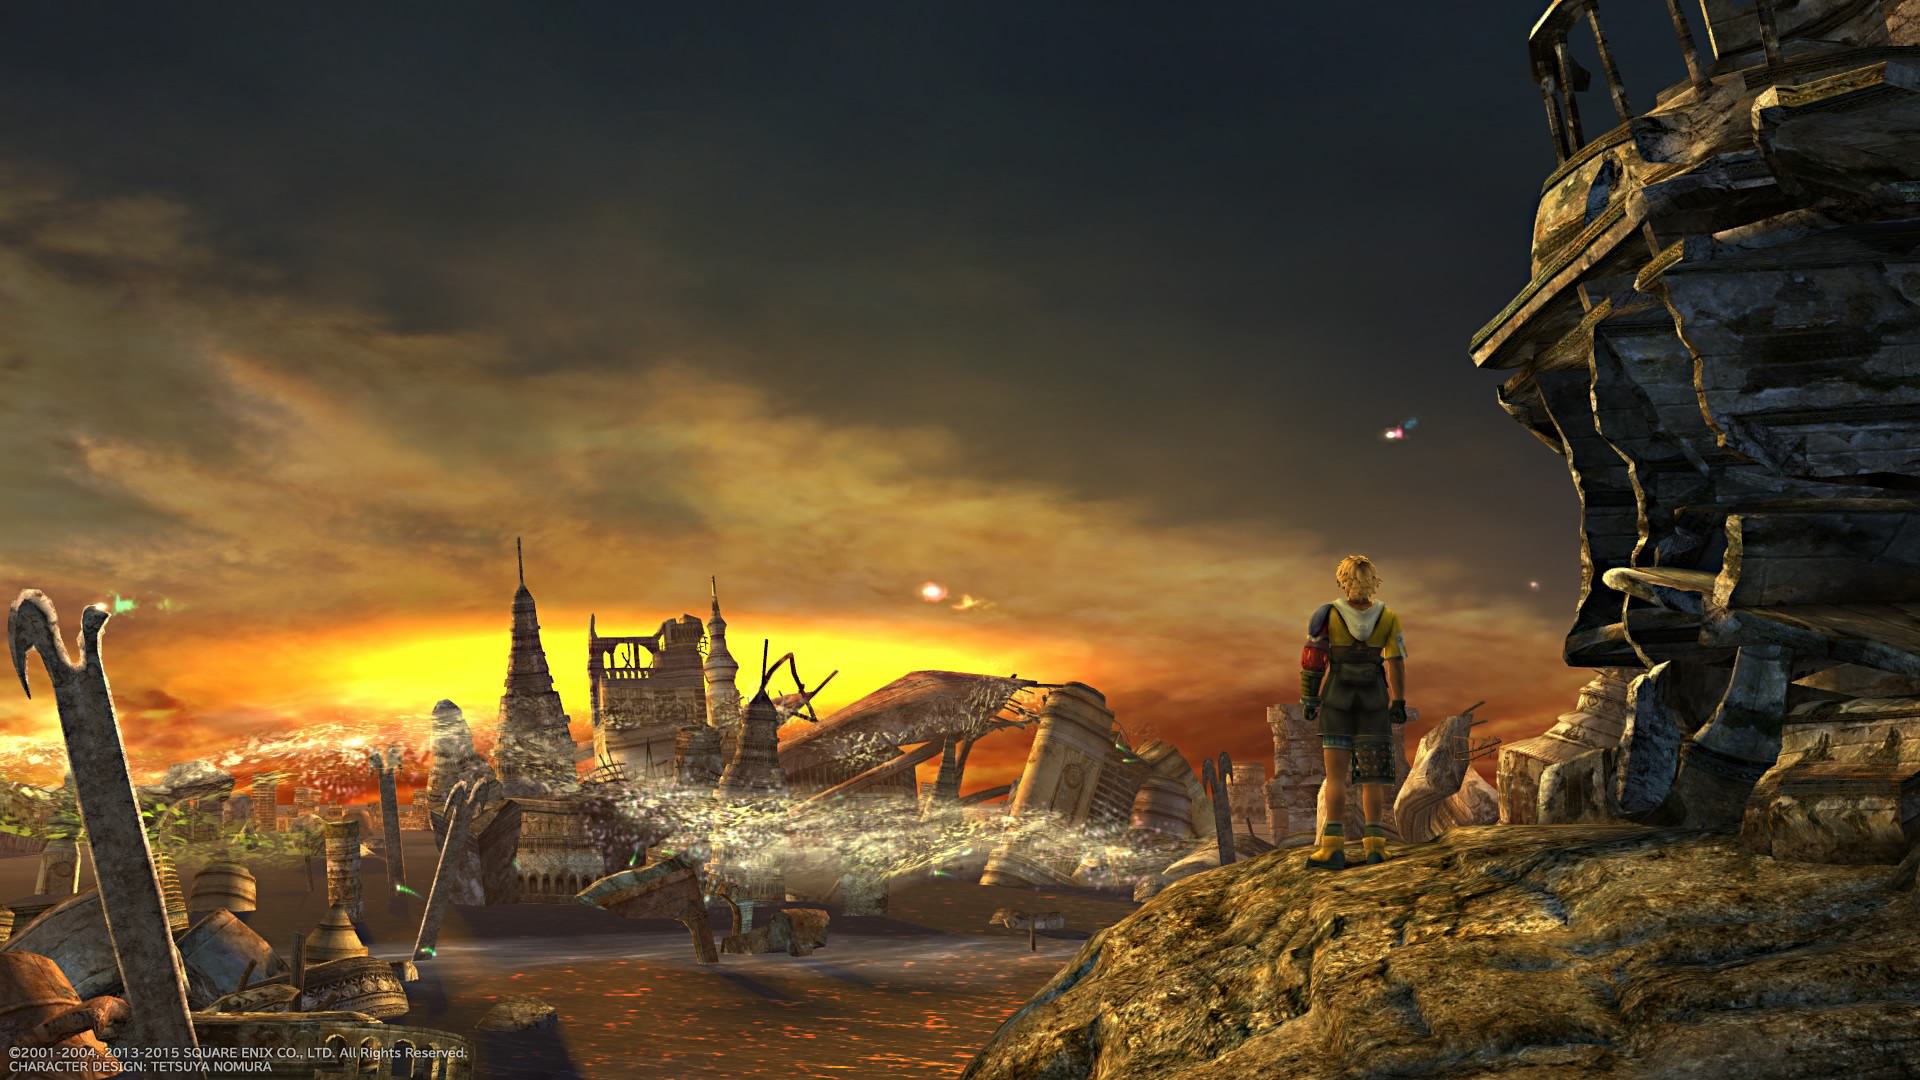 X X 2 Final Fantasy X X 2 Hd Remaster Launching On Steam This Week